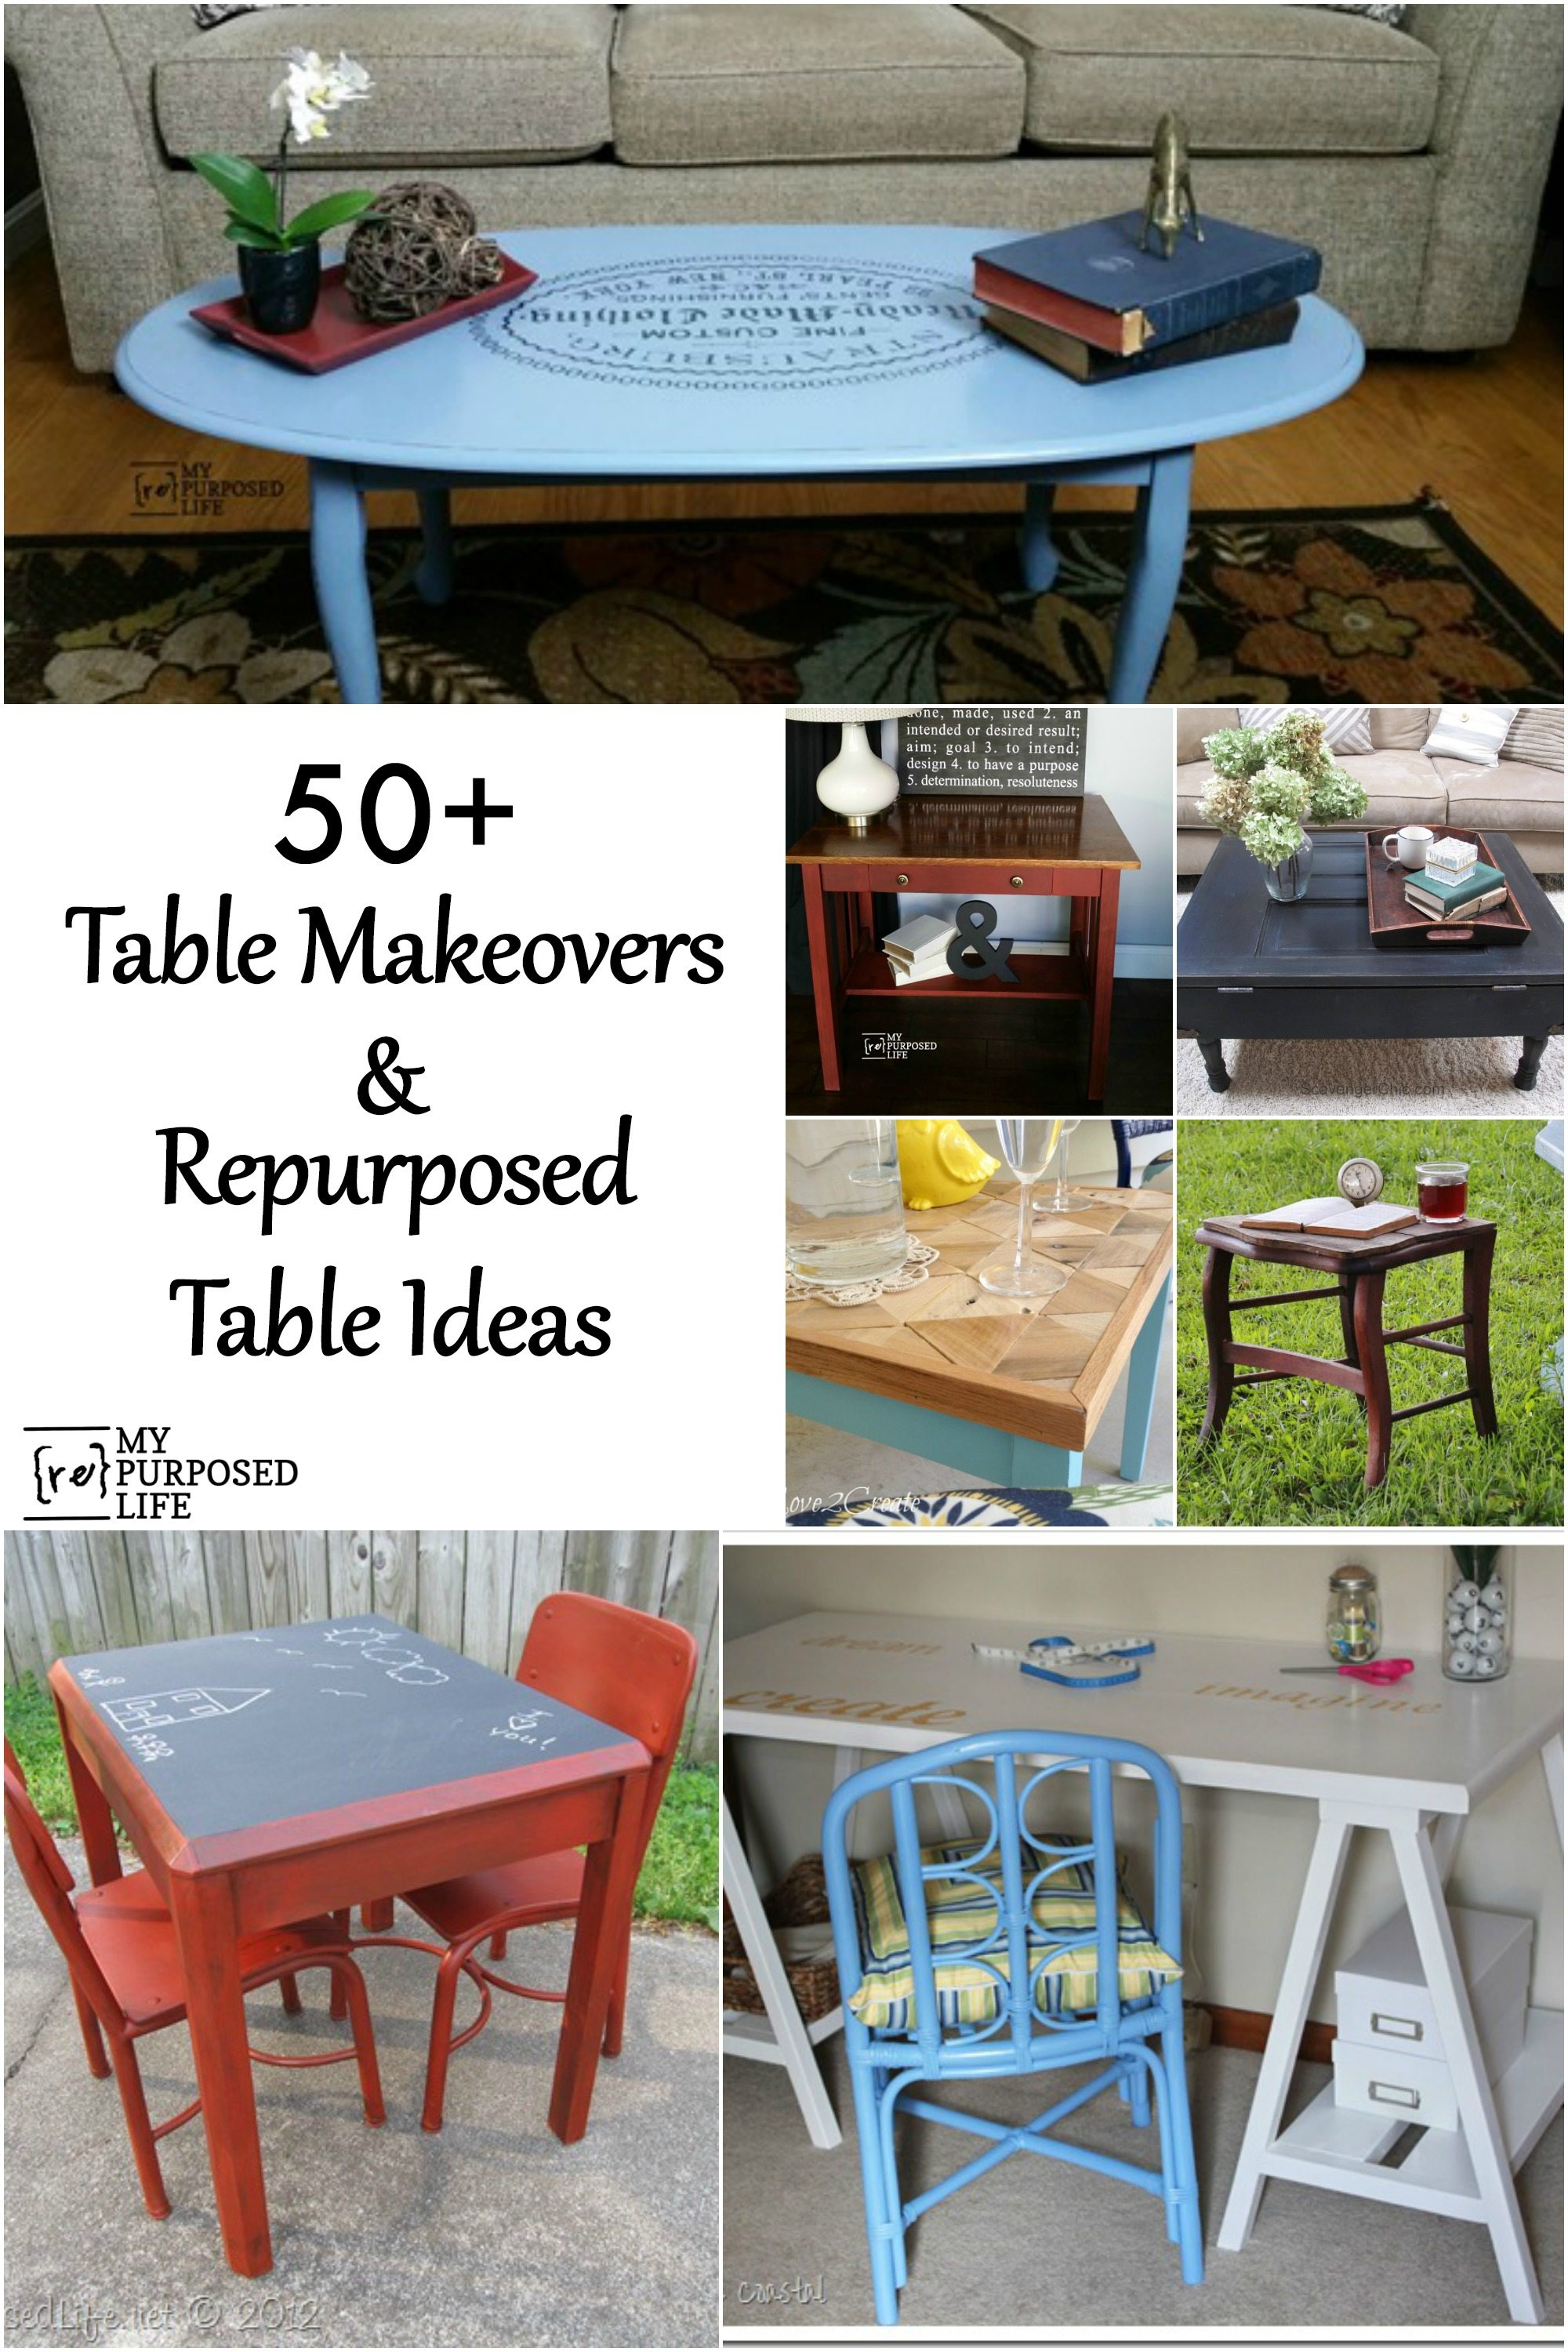 Repurposed Table Ideas Dining Tables Coffee My Life Rescue Re Imagine Repeat